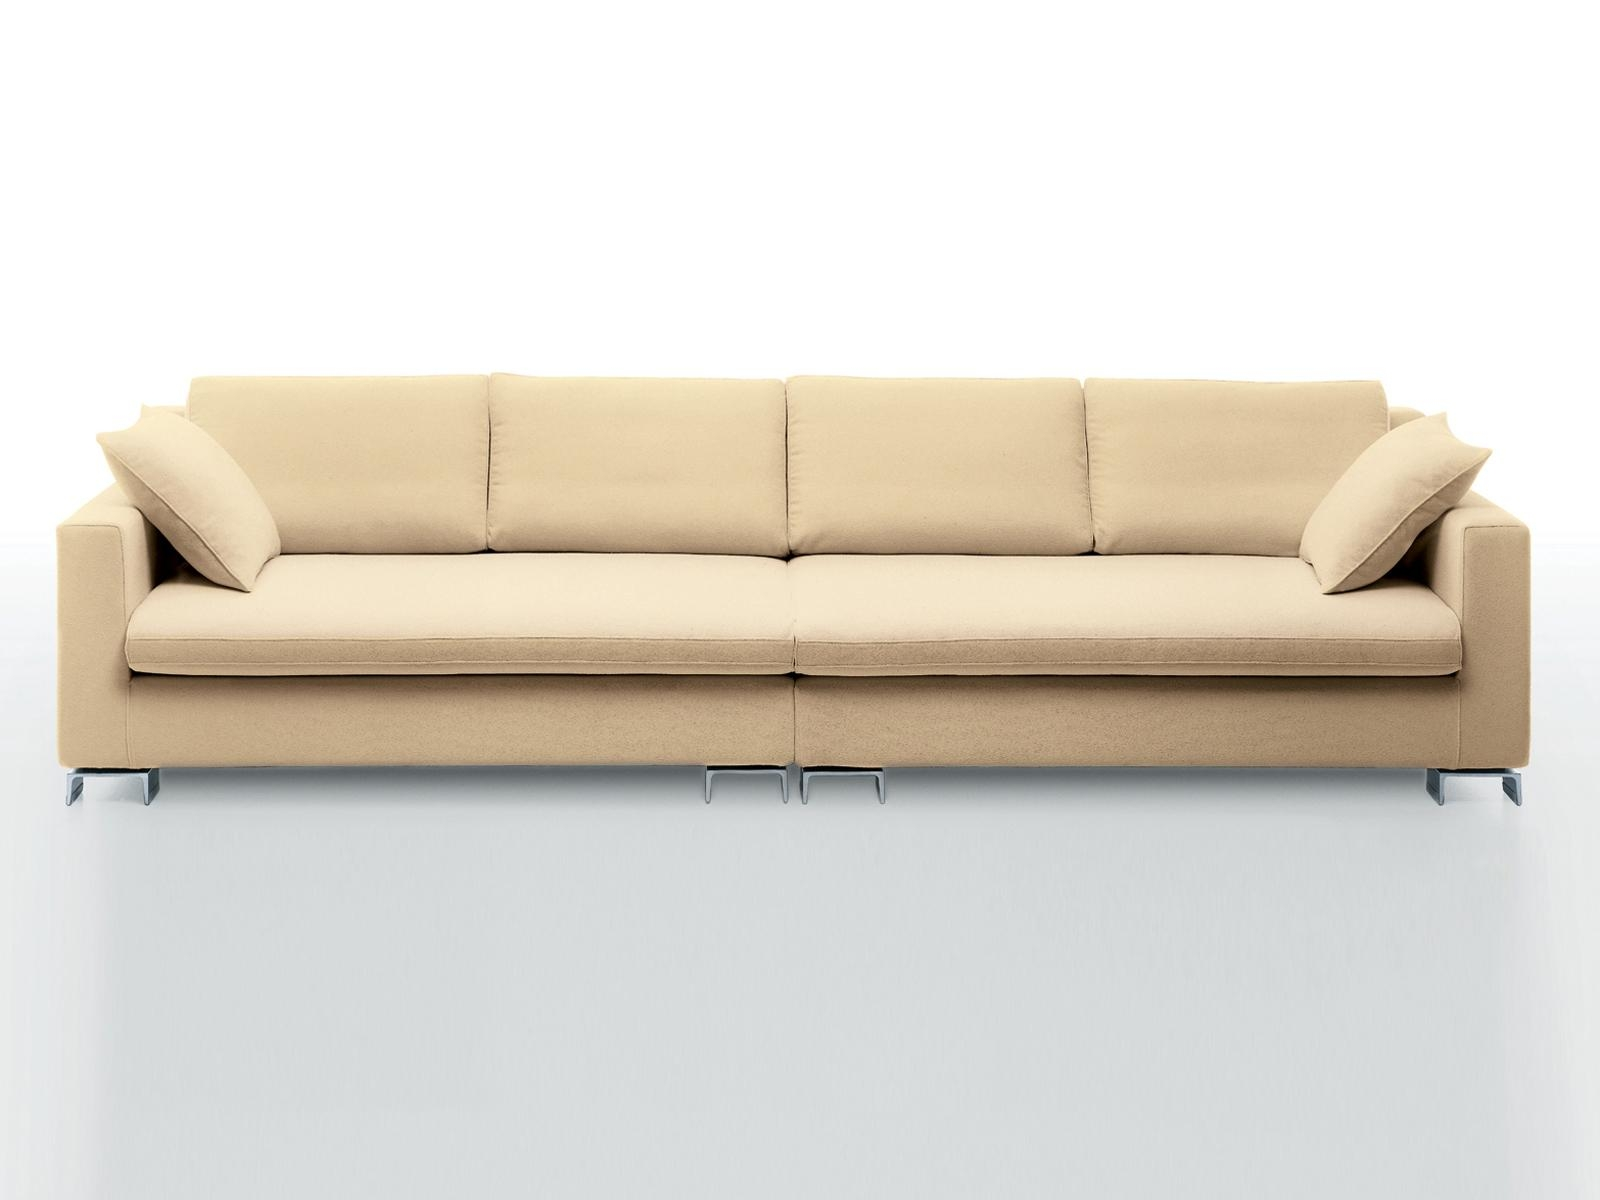 Bridge | 4 Seater Sofai 4 Mariani Design Luca Scacchetti Throughout 4 Seat Sofas (Image 8 of 20)